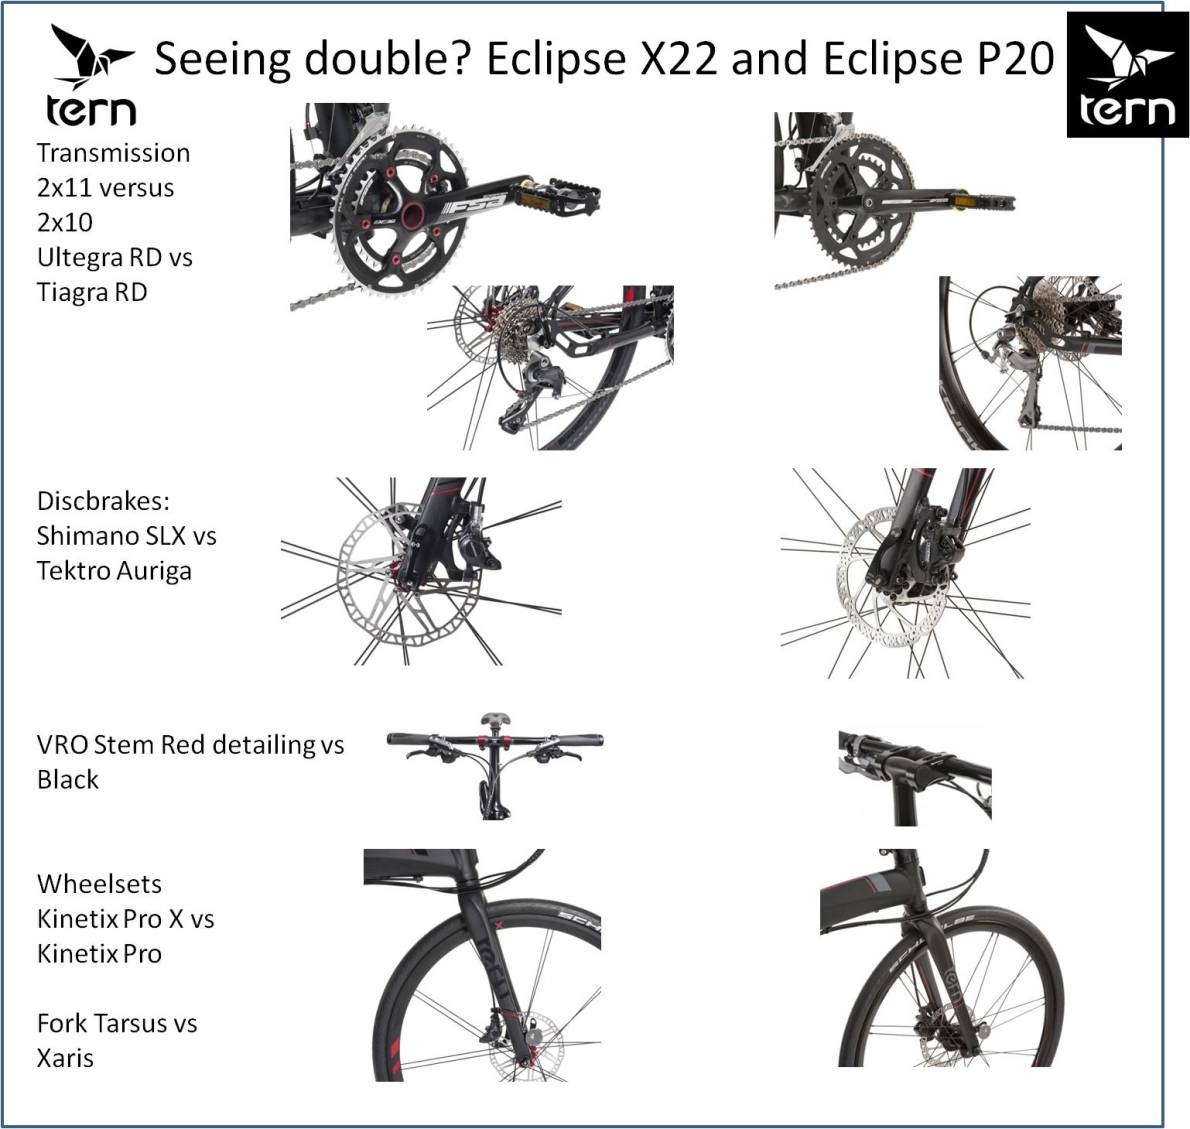 eclipse-p20-x22-folding-bike